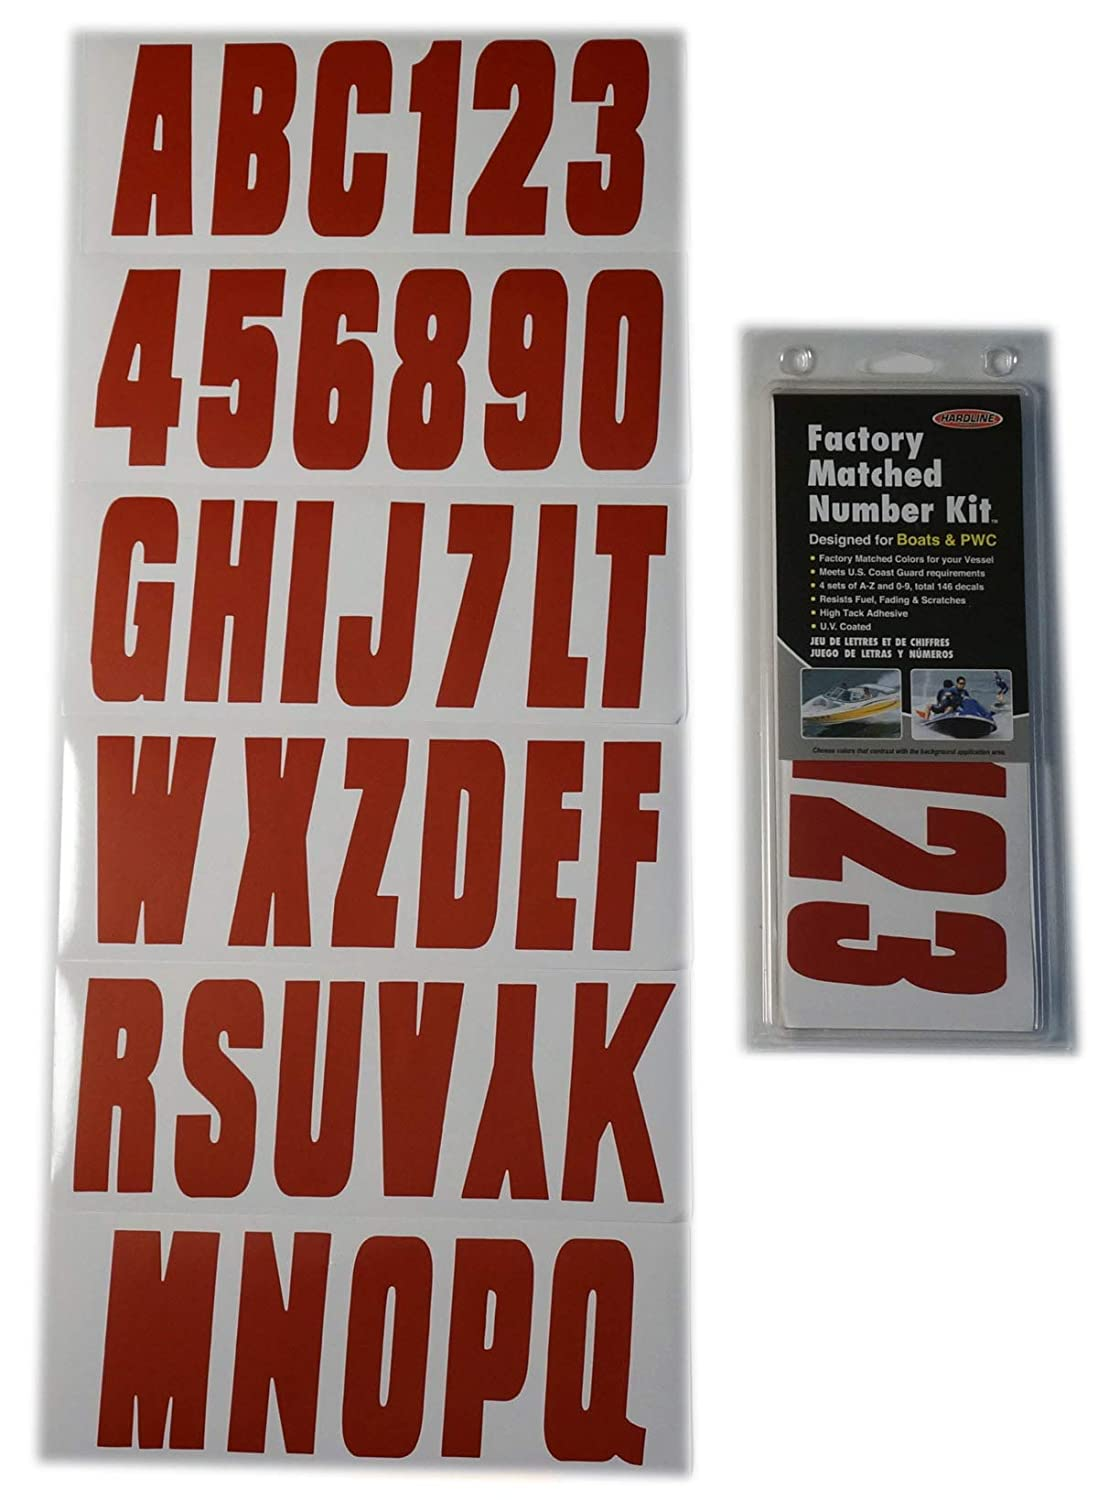 Hardline Products Series 350 Factory Matched 3-Inch Boat /& PWC Registration Number Kit Solid Red